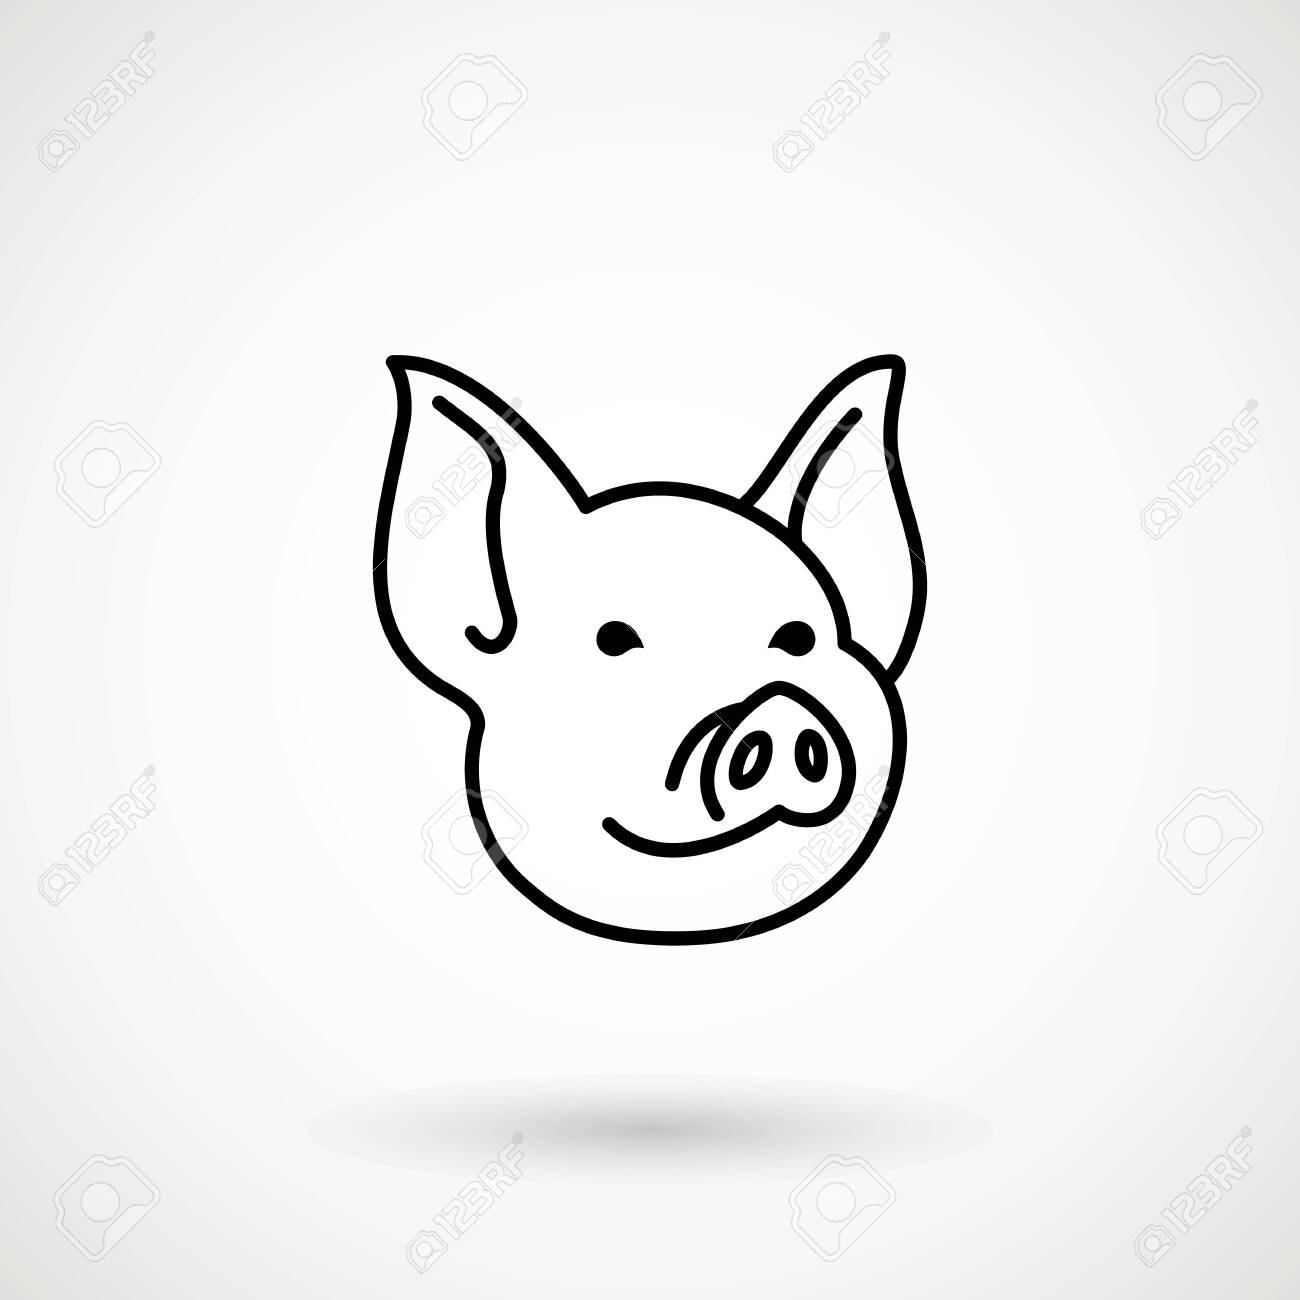 Pig line icon. Icon Piglet face in outline style. Icon of Cartoon pig head. Chinese New Year 2019. Zodiac. Chinese traditional Design, decoration Vector illustration. - 143667549